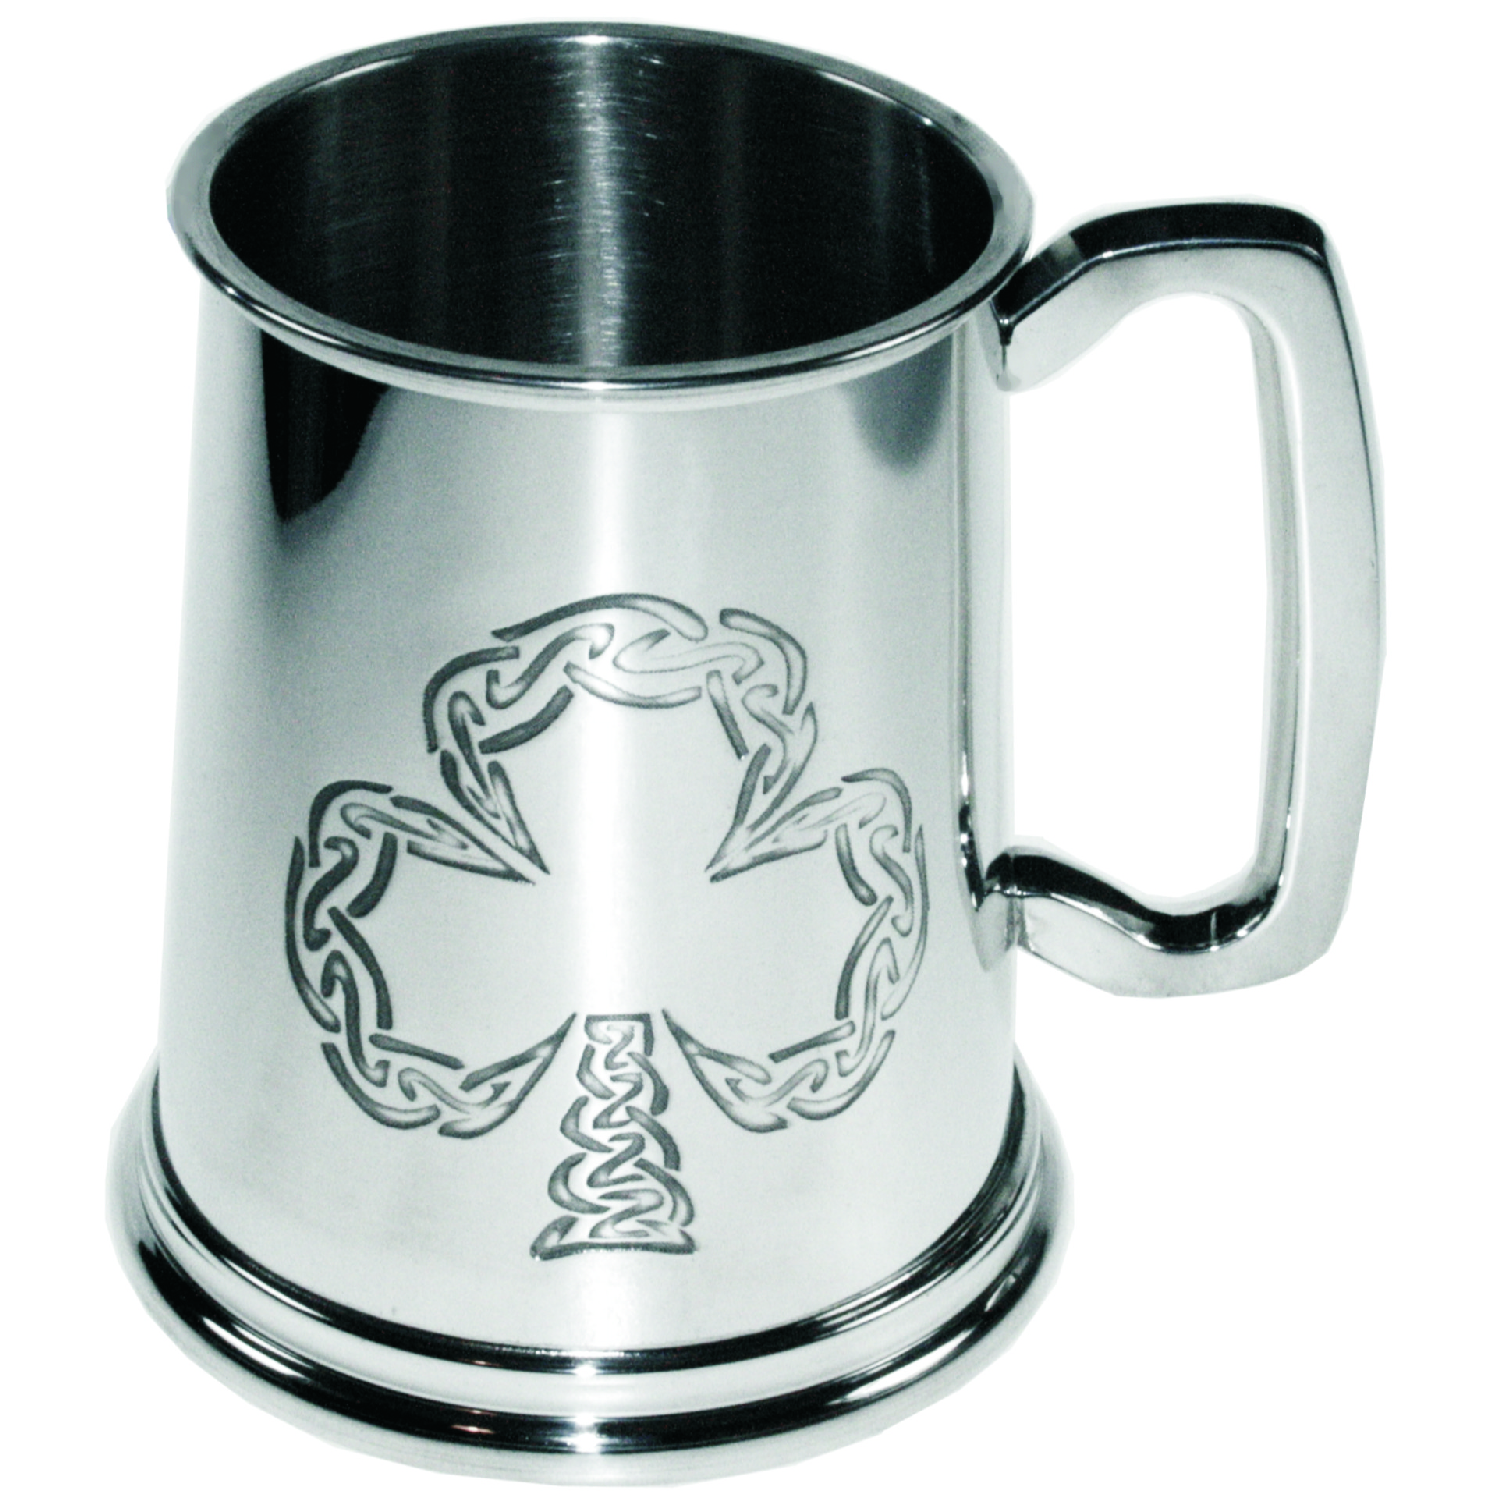 Shamrock Pewter Tankard. Constructed from English pewter by expert craftsmen. A traditional tankard including the Irish Shamrock embossed logo. Presented in a standard packing box. Also incorporating a rounded handle and lots of room for etching.